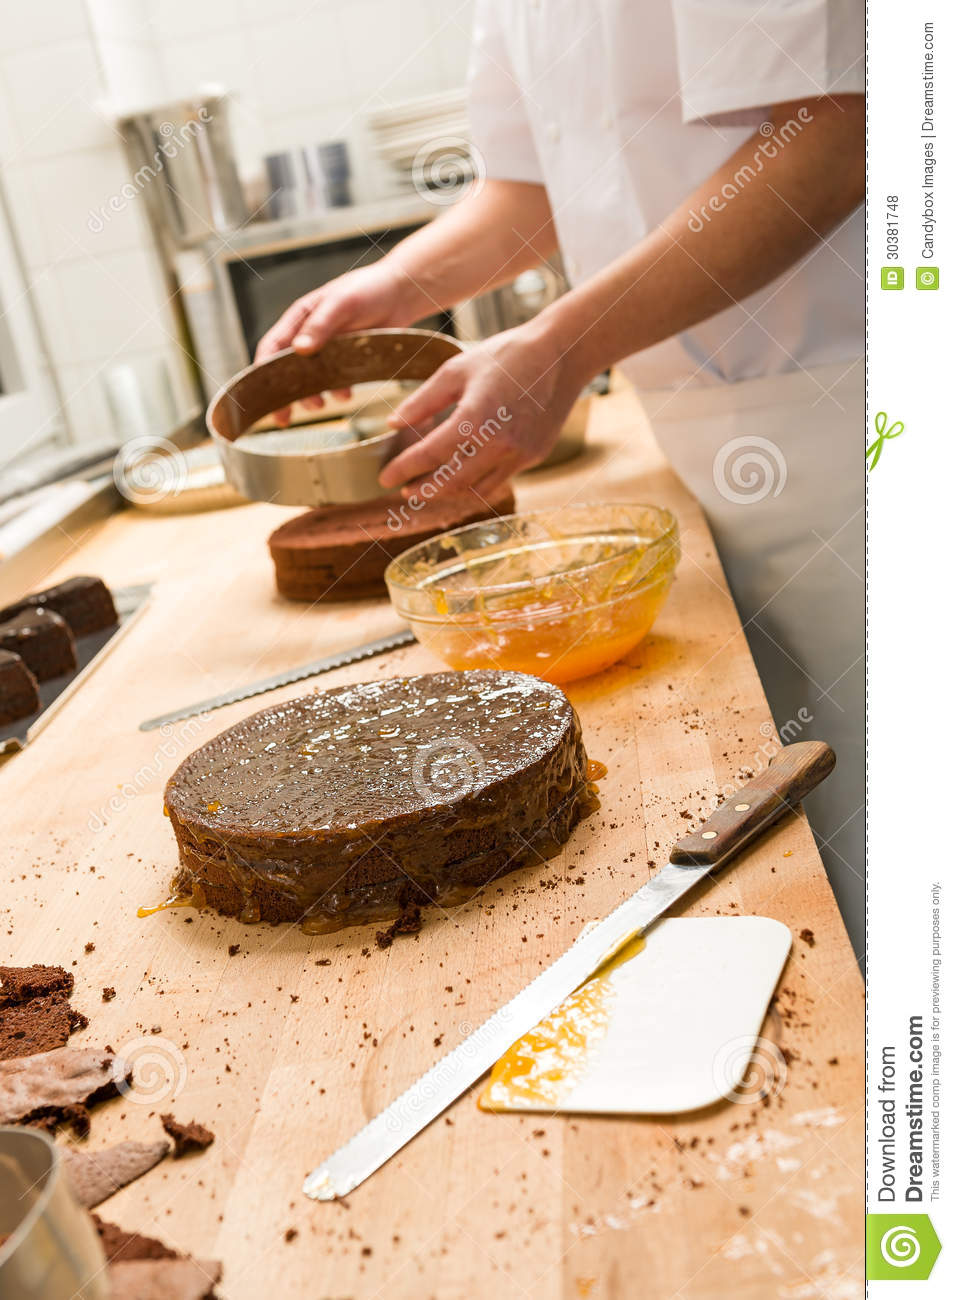 cook taking out cake from cake form stock photo image of food knife 30381748. Black Bedroom Furniture Sets. Home Design Ideas